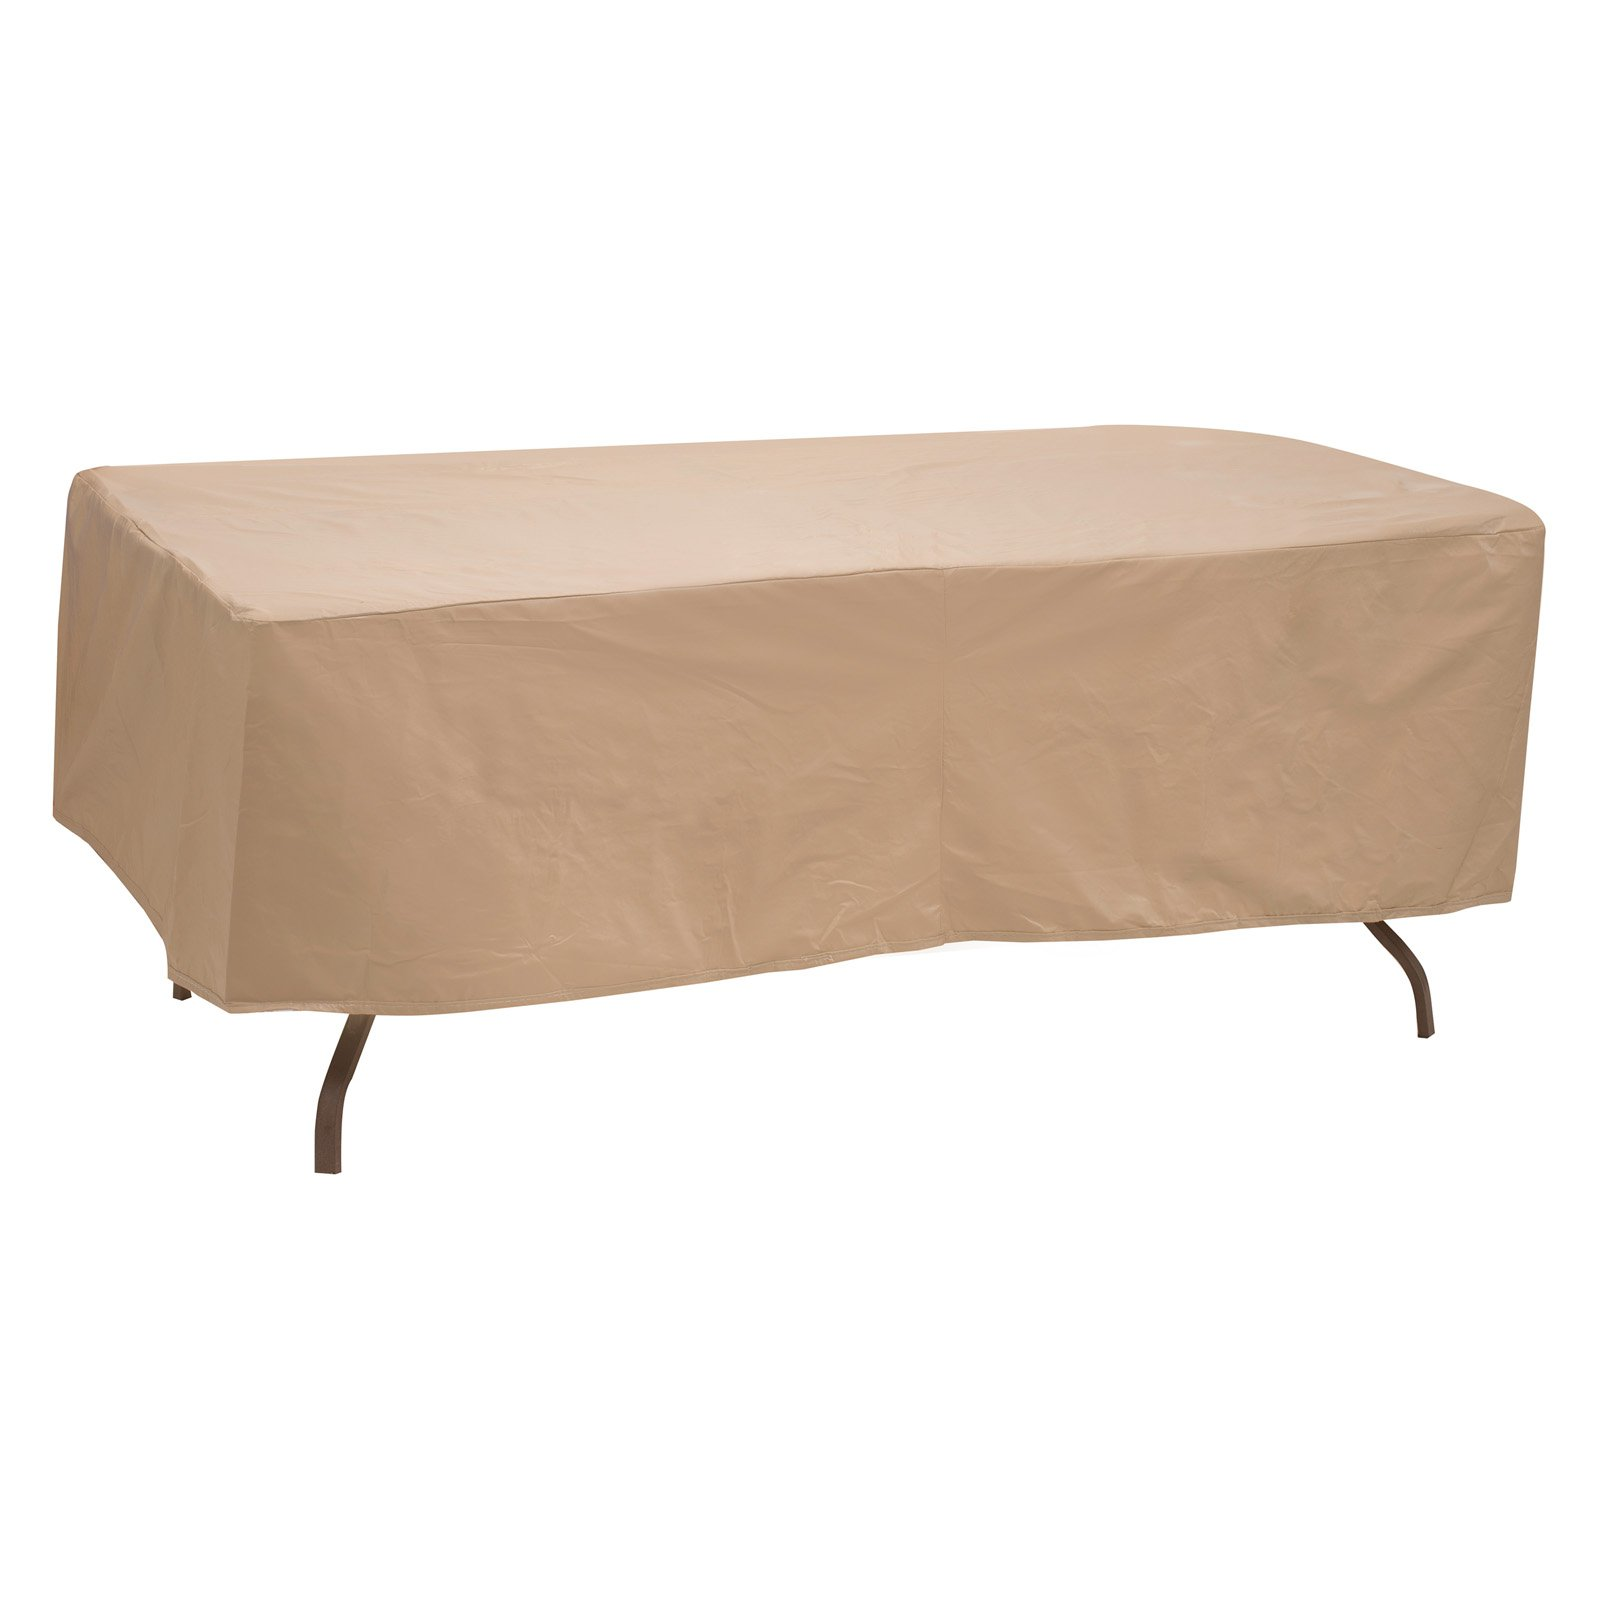 Pci By Adco Oval Rectangular Outdoor Table Cover